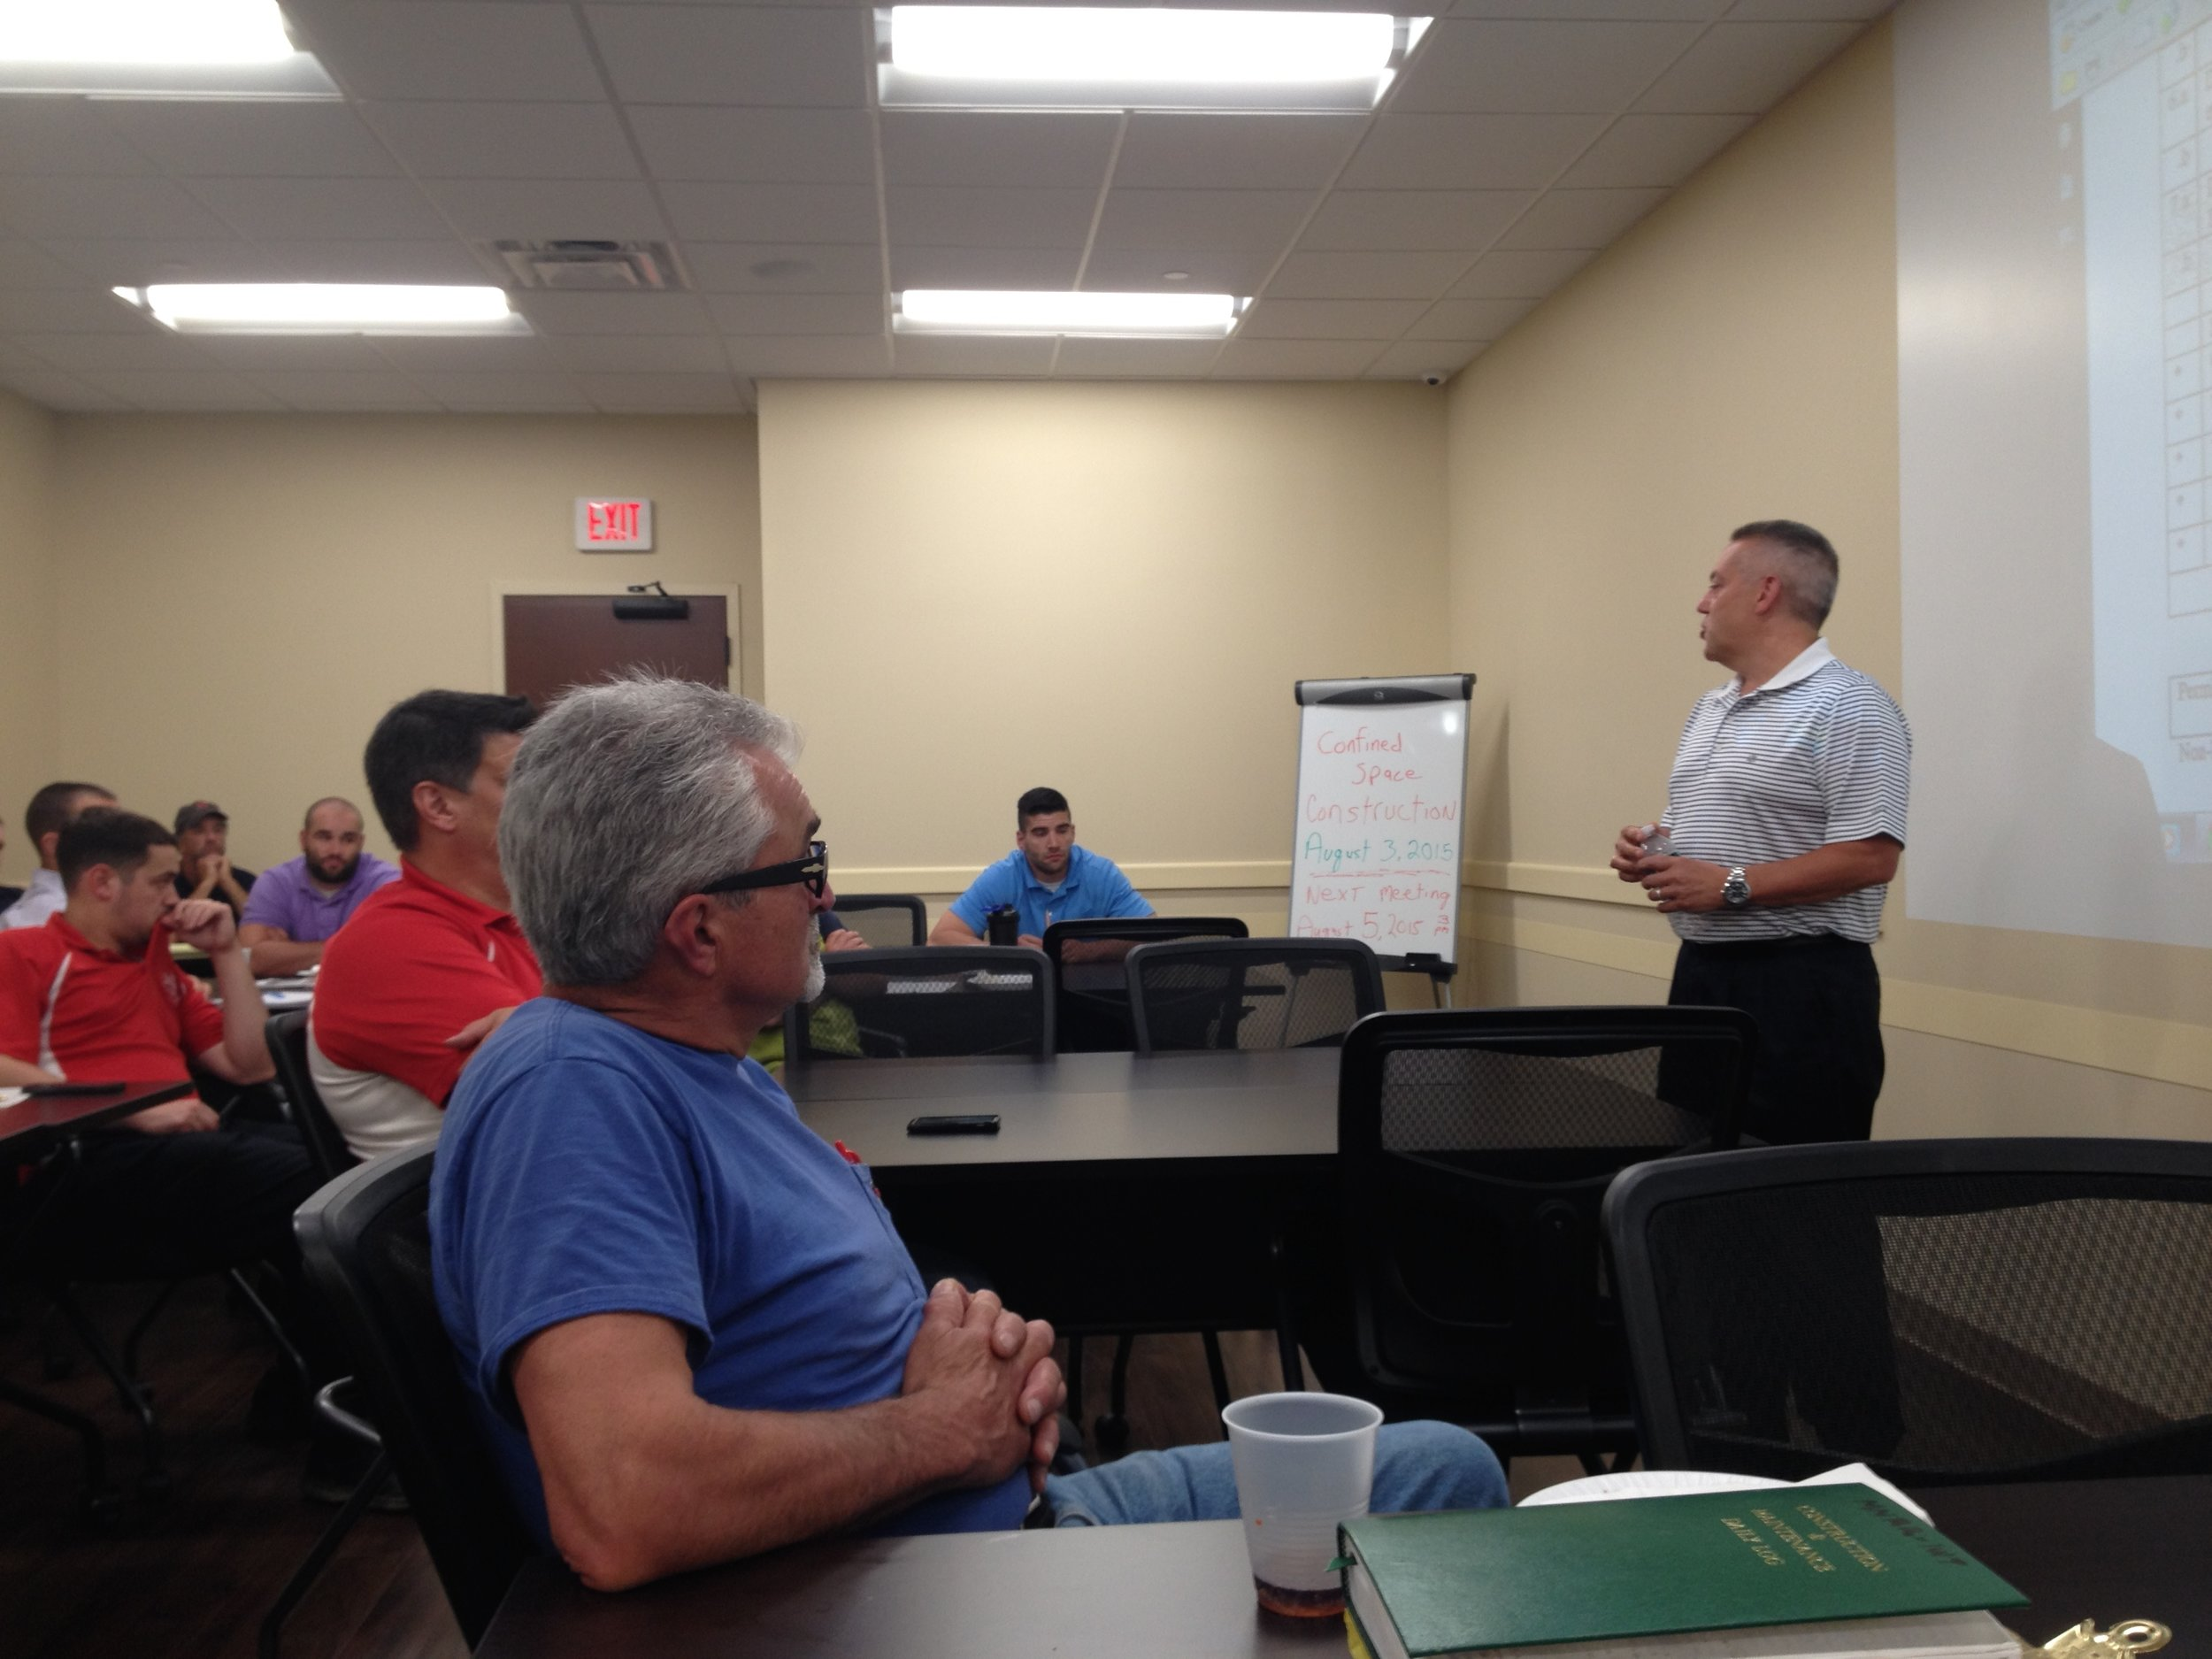 Anthony Rizzo Jr. discusses a new federal confined space regulation with construction managers at a safety meeting.